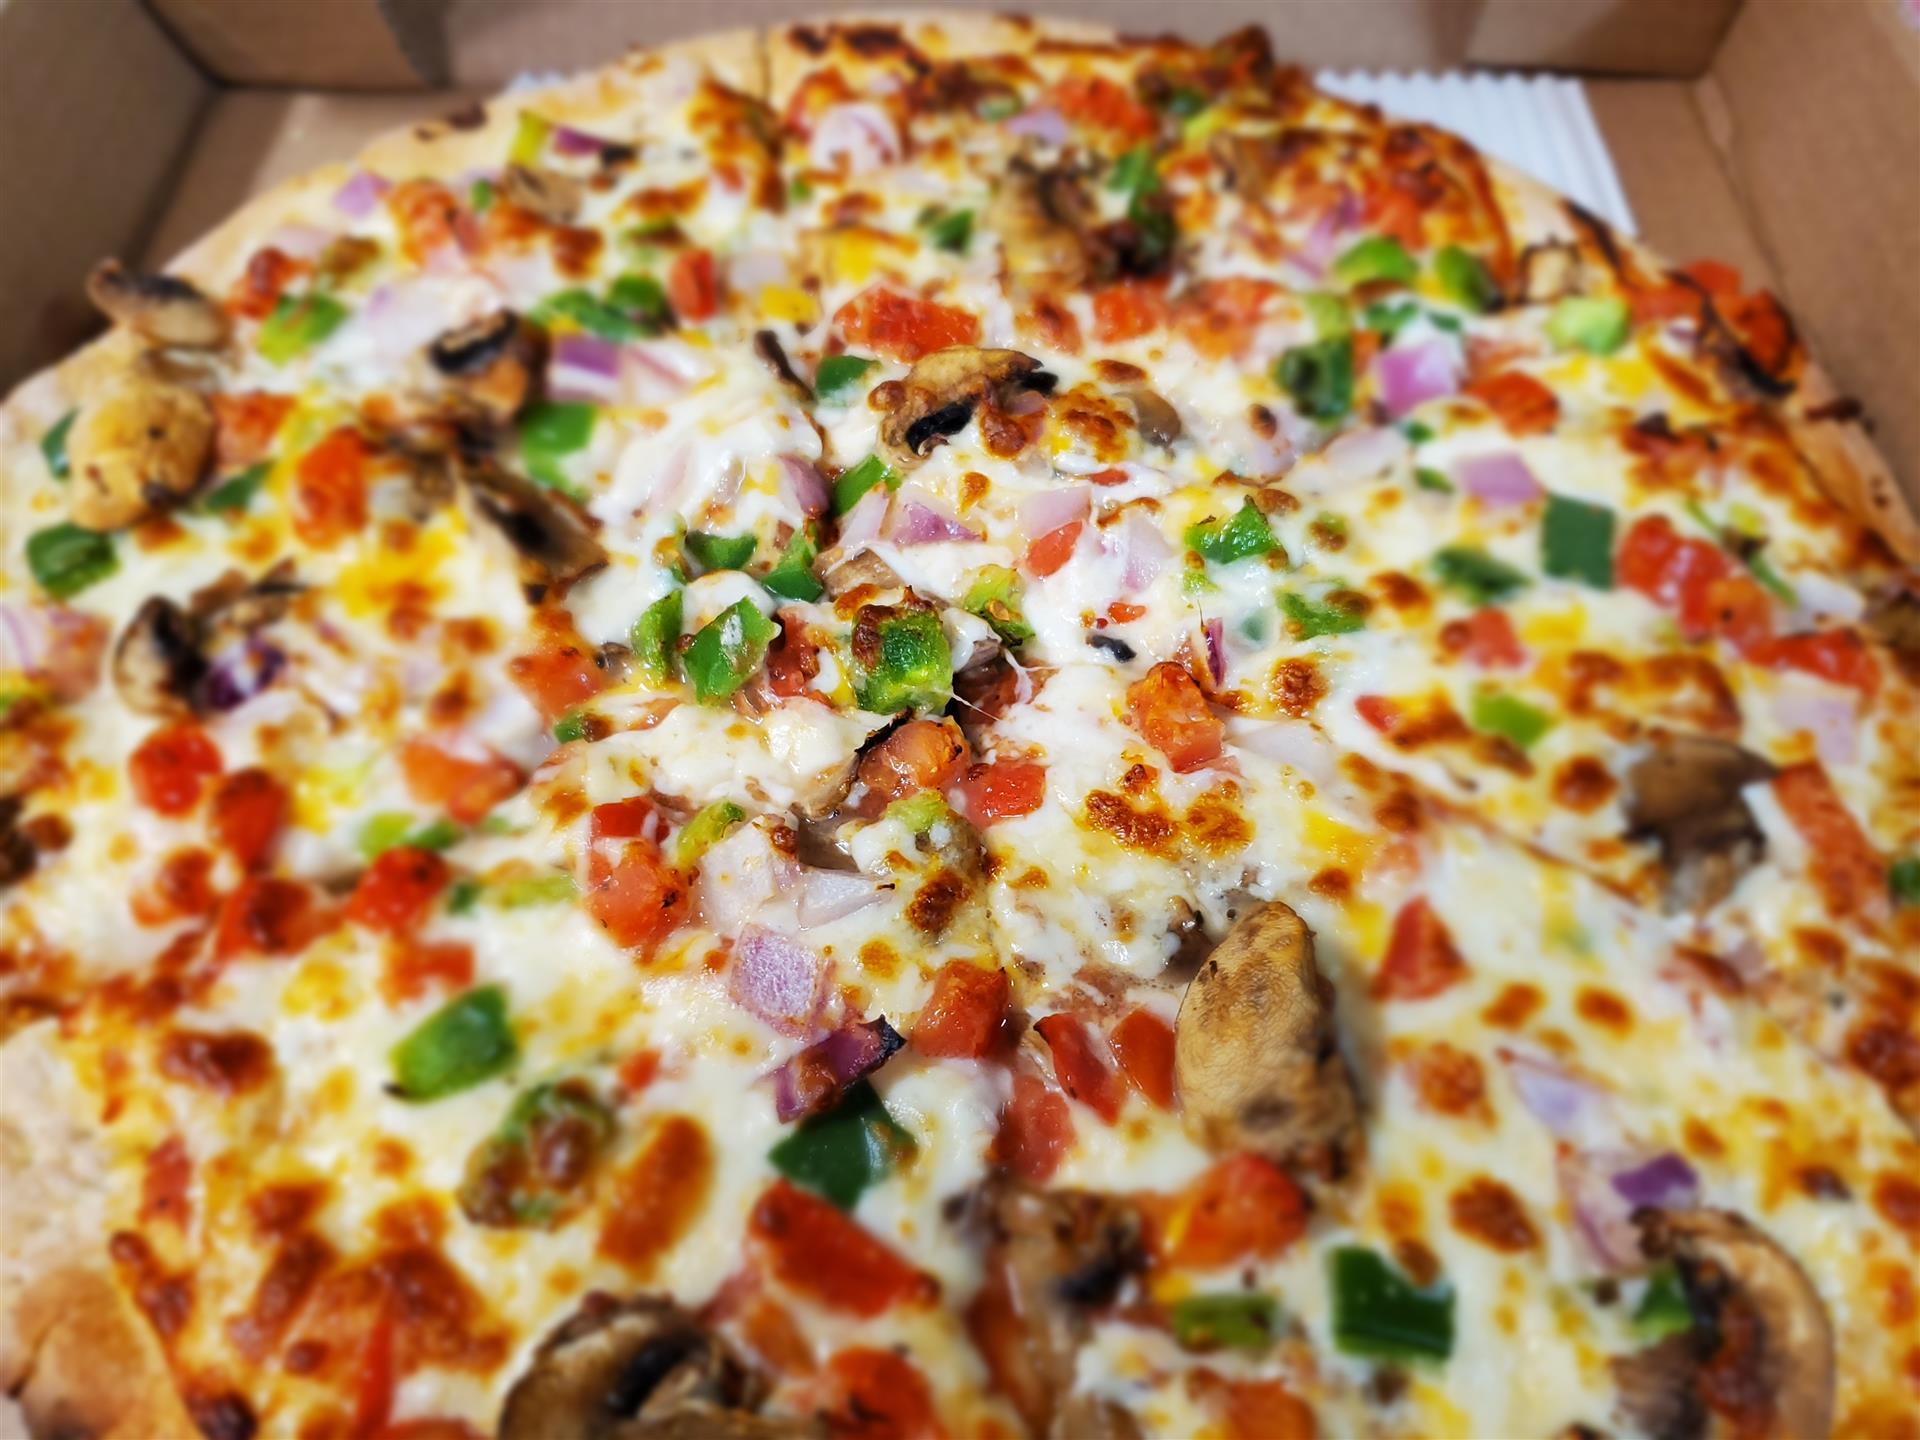 mardi gras pizza- pizza pie with bell peppers, onions, chicken, and tomato